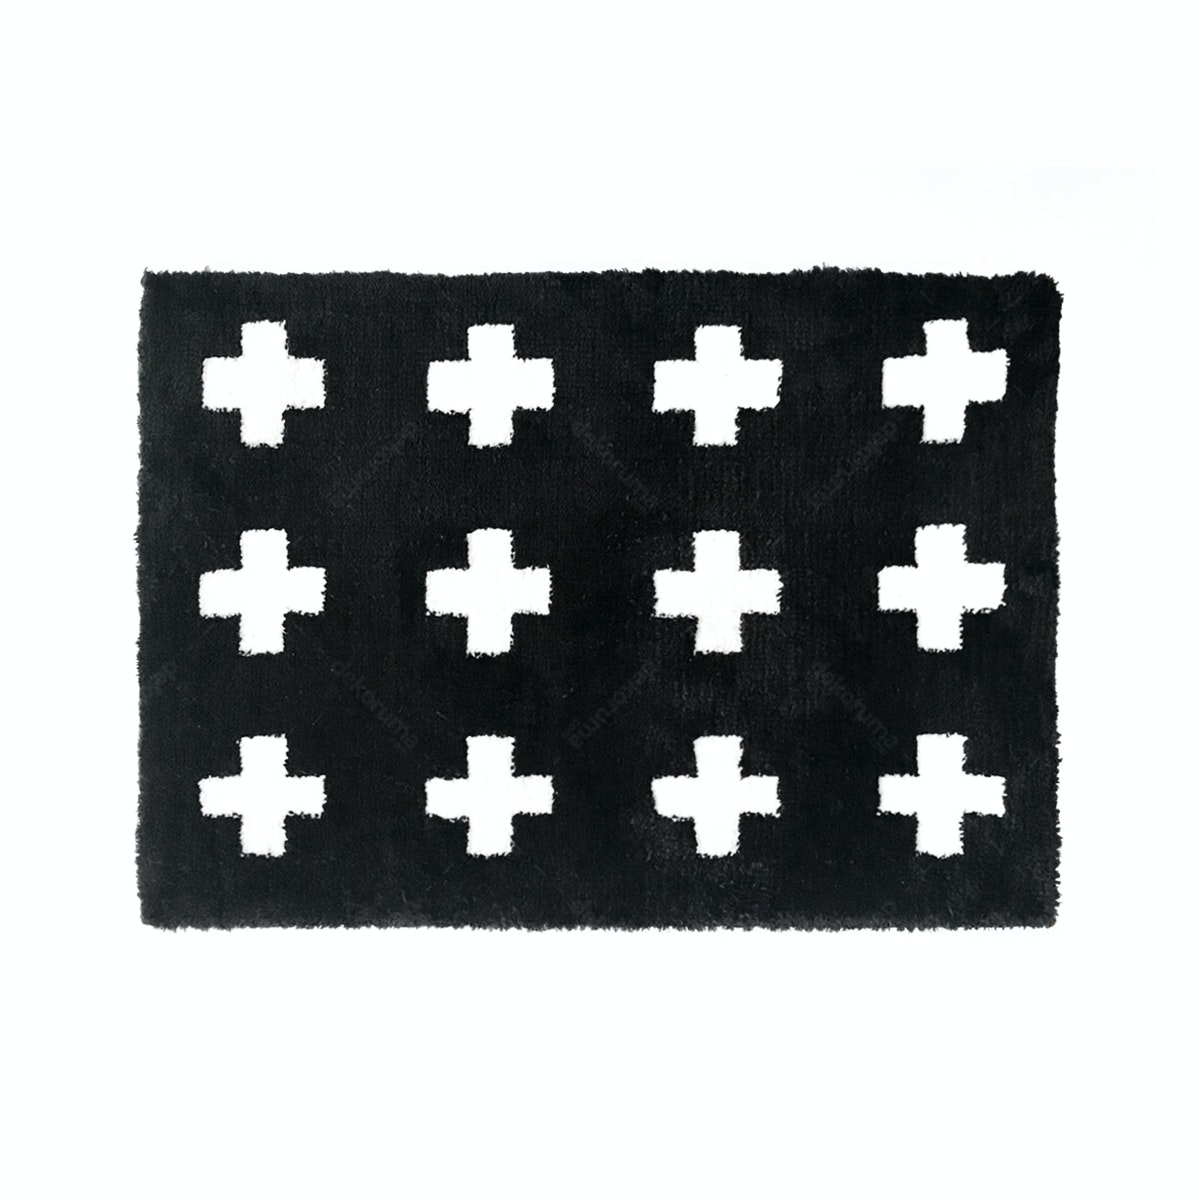 The Alice's Place Keset Pop Cross Fur Mat Black 50x70cm